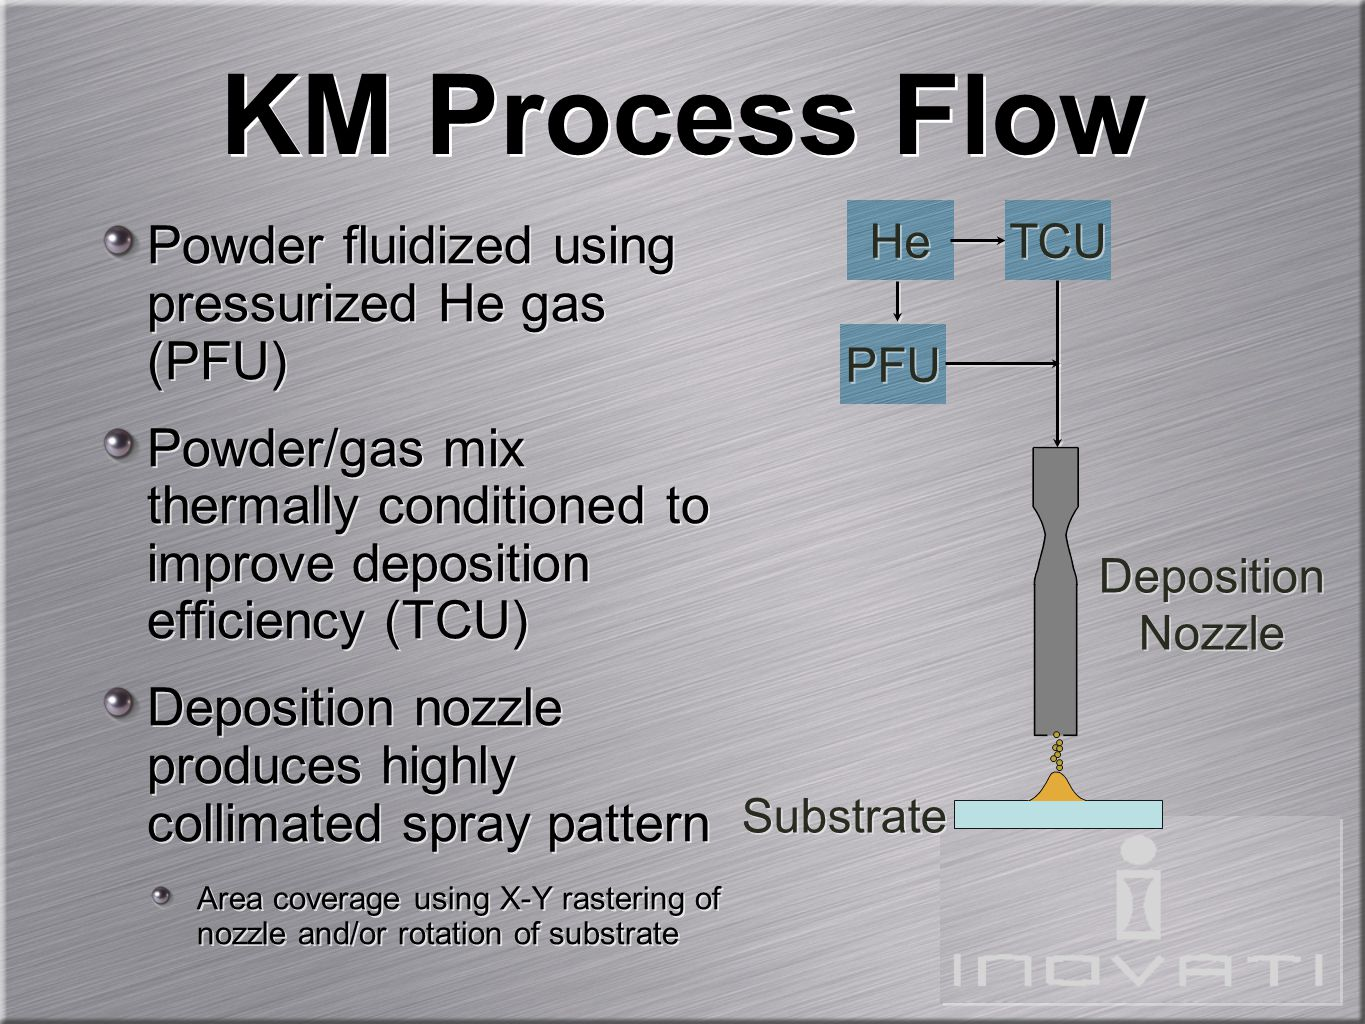 Powder fluidized using pressurized He gas (PFU) Powder/gas mix thermally conditioned to improve deposition efficiency (TCU) Deposition nozzle produces highly collimated spray pattern Area coverage using X-Y rastering of nozzle and/or rotation of substrate Powder fluidized using pressurized He gas (PFU) Powder/gas mix thermally conditioned to improve deposition efficiency (TCU) Deposition nozzle produces highly collimated spray pattern Area coverage using X-Y rastering of nozzle and/or rotation of substrate KM Process Flow He PFU TCU Deposition Nozzle Deposition Nozzle Substrate